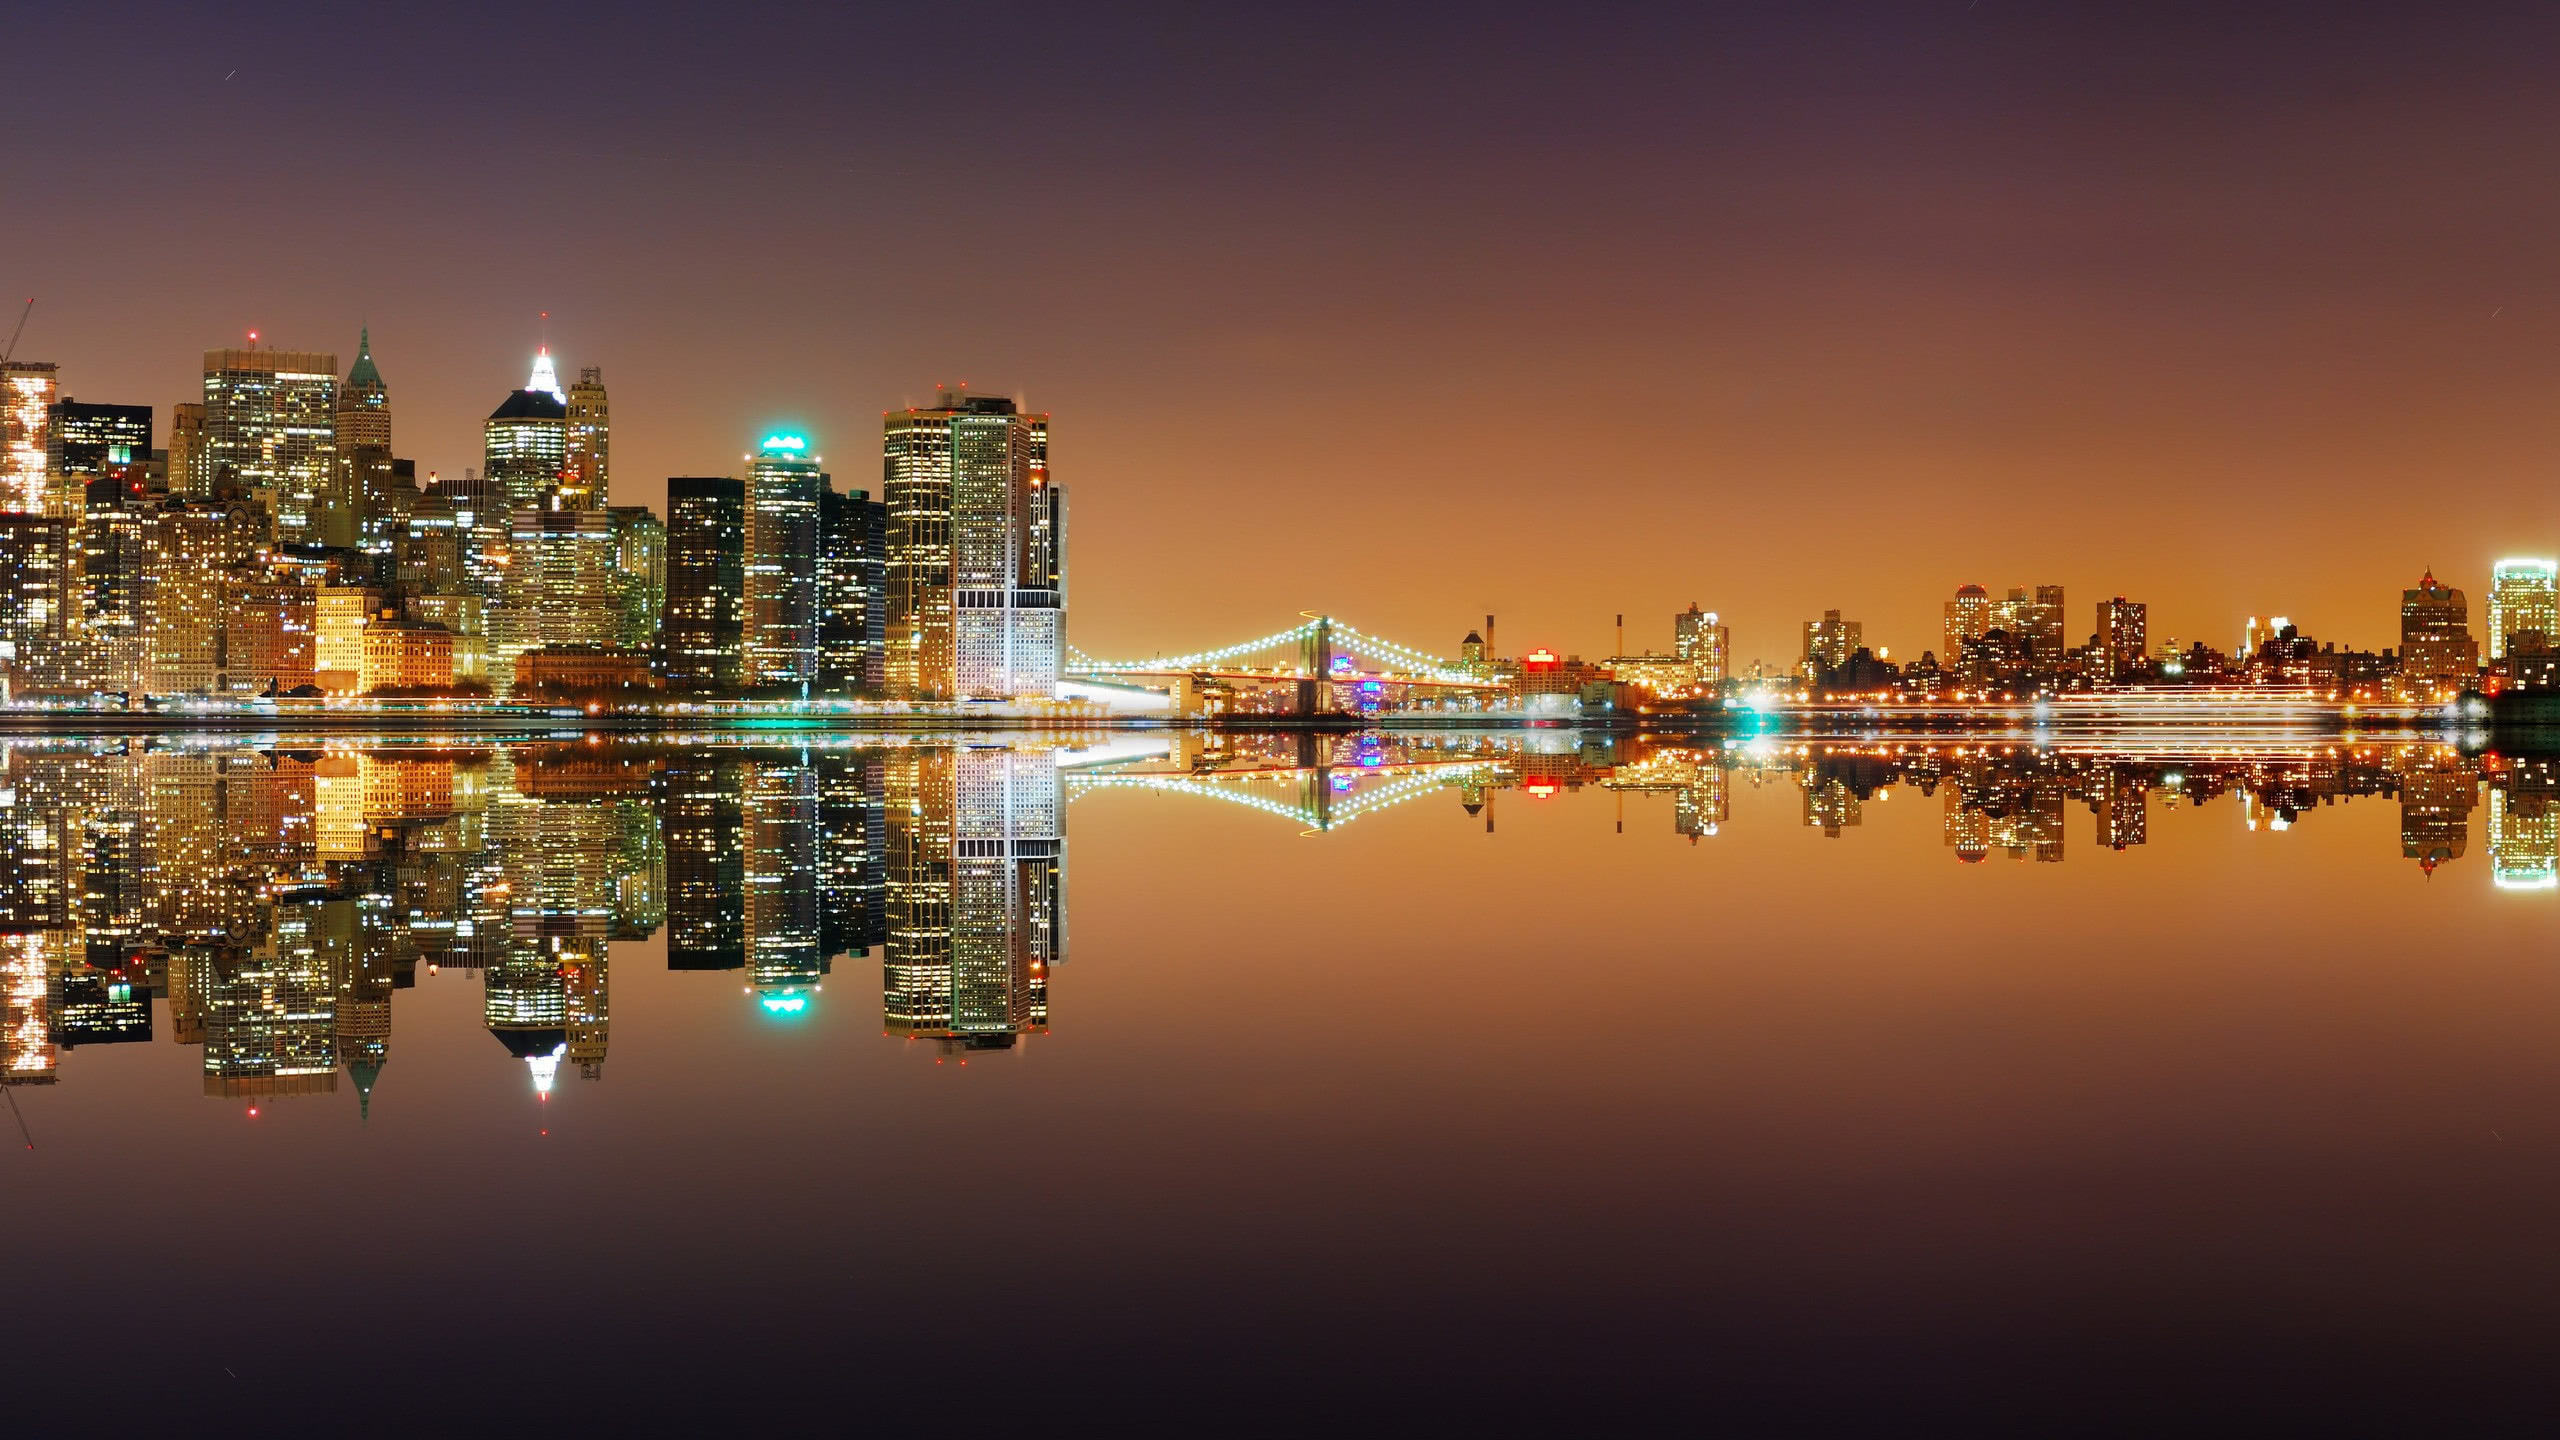 New York Skyline Night United States Wqhd 1440p Wallpaper Pixelz